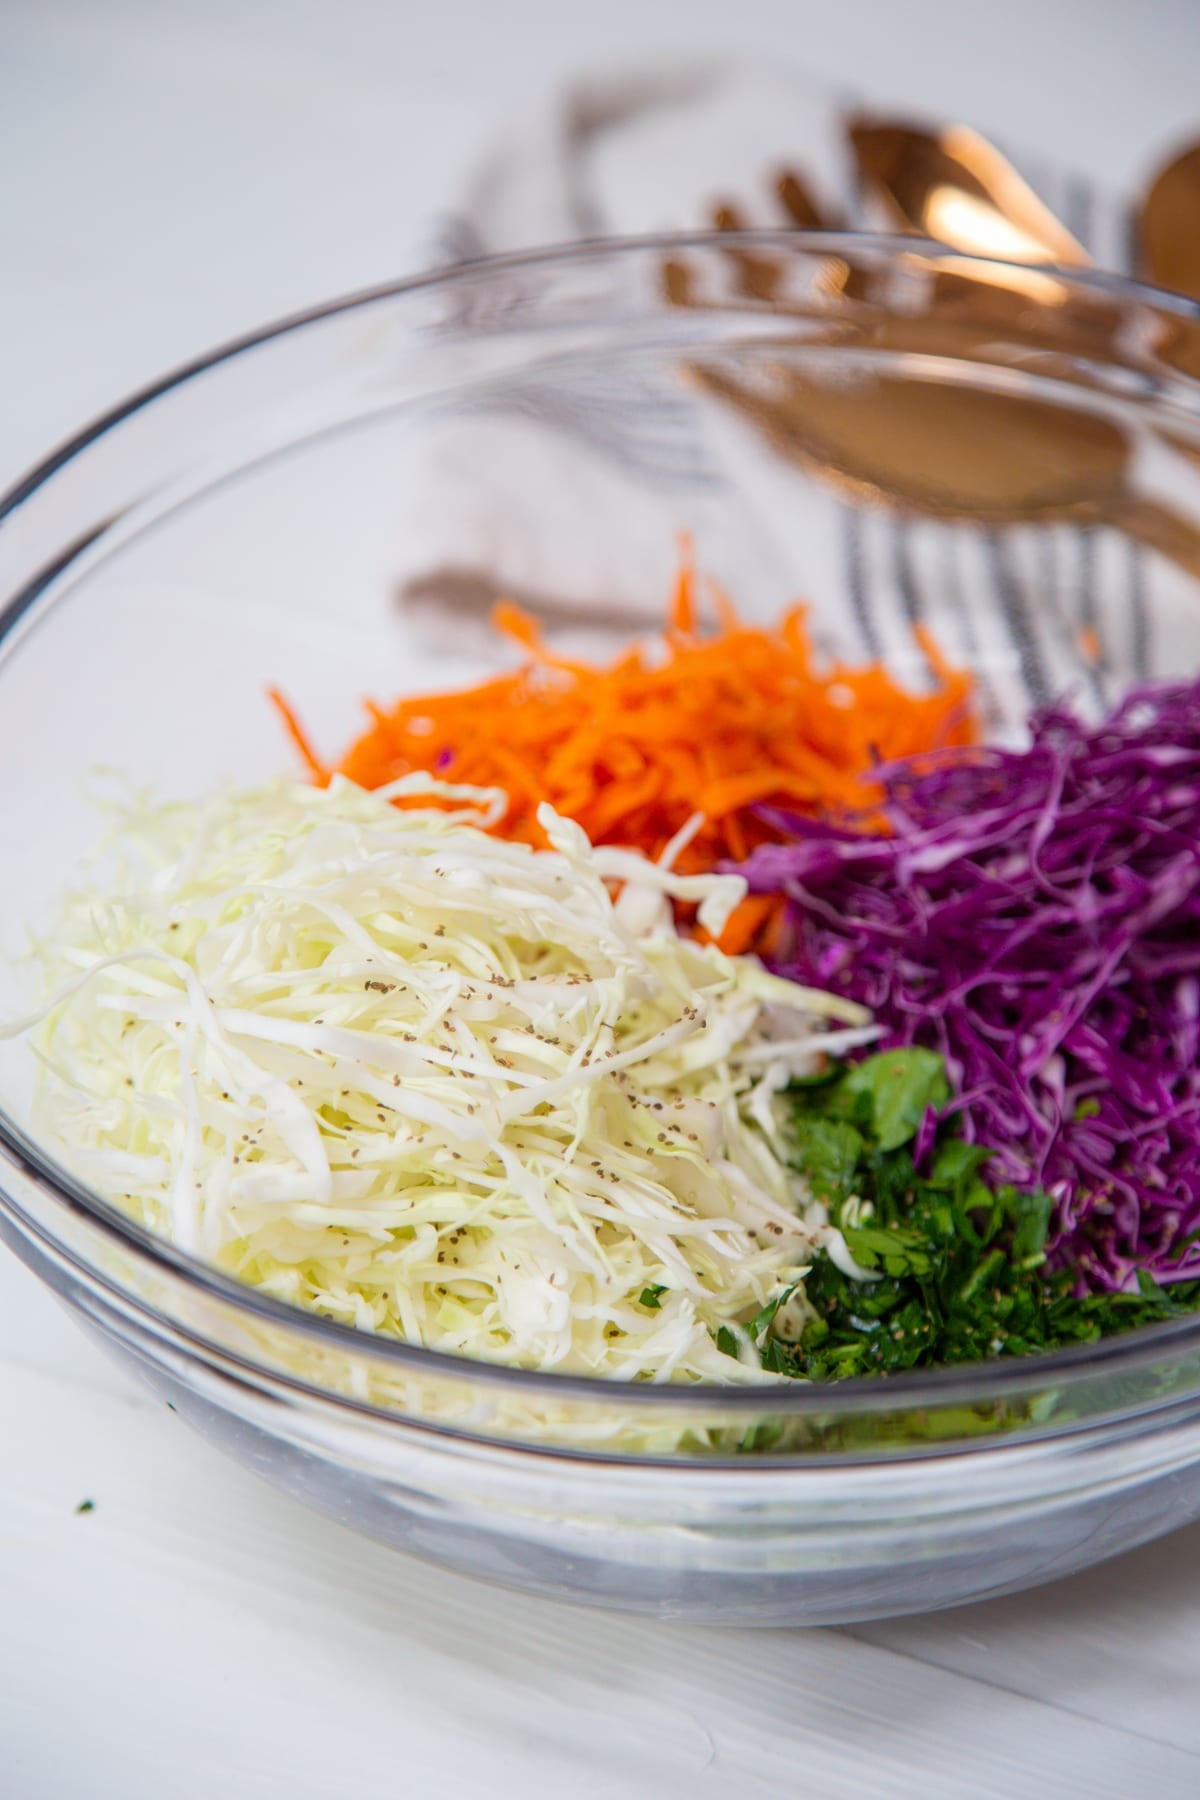 A clear glass bowl filled with shredded green and red cabbage, grated orange carrots, and chopped parsley.